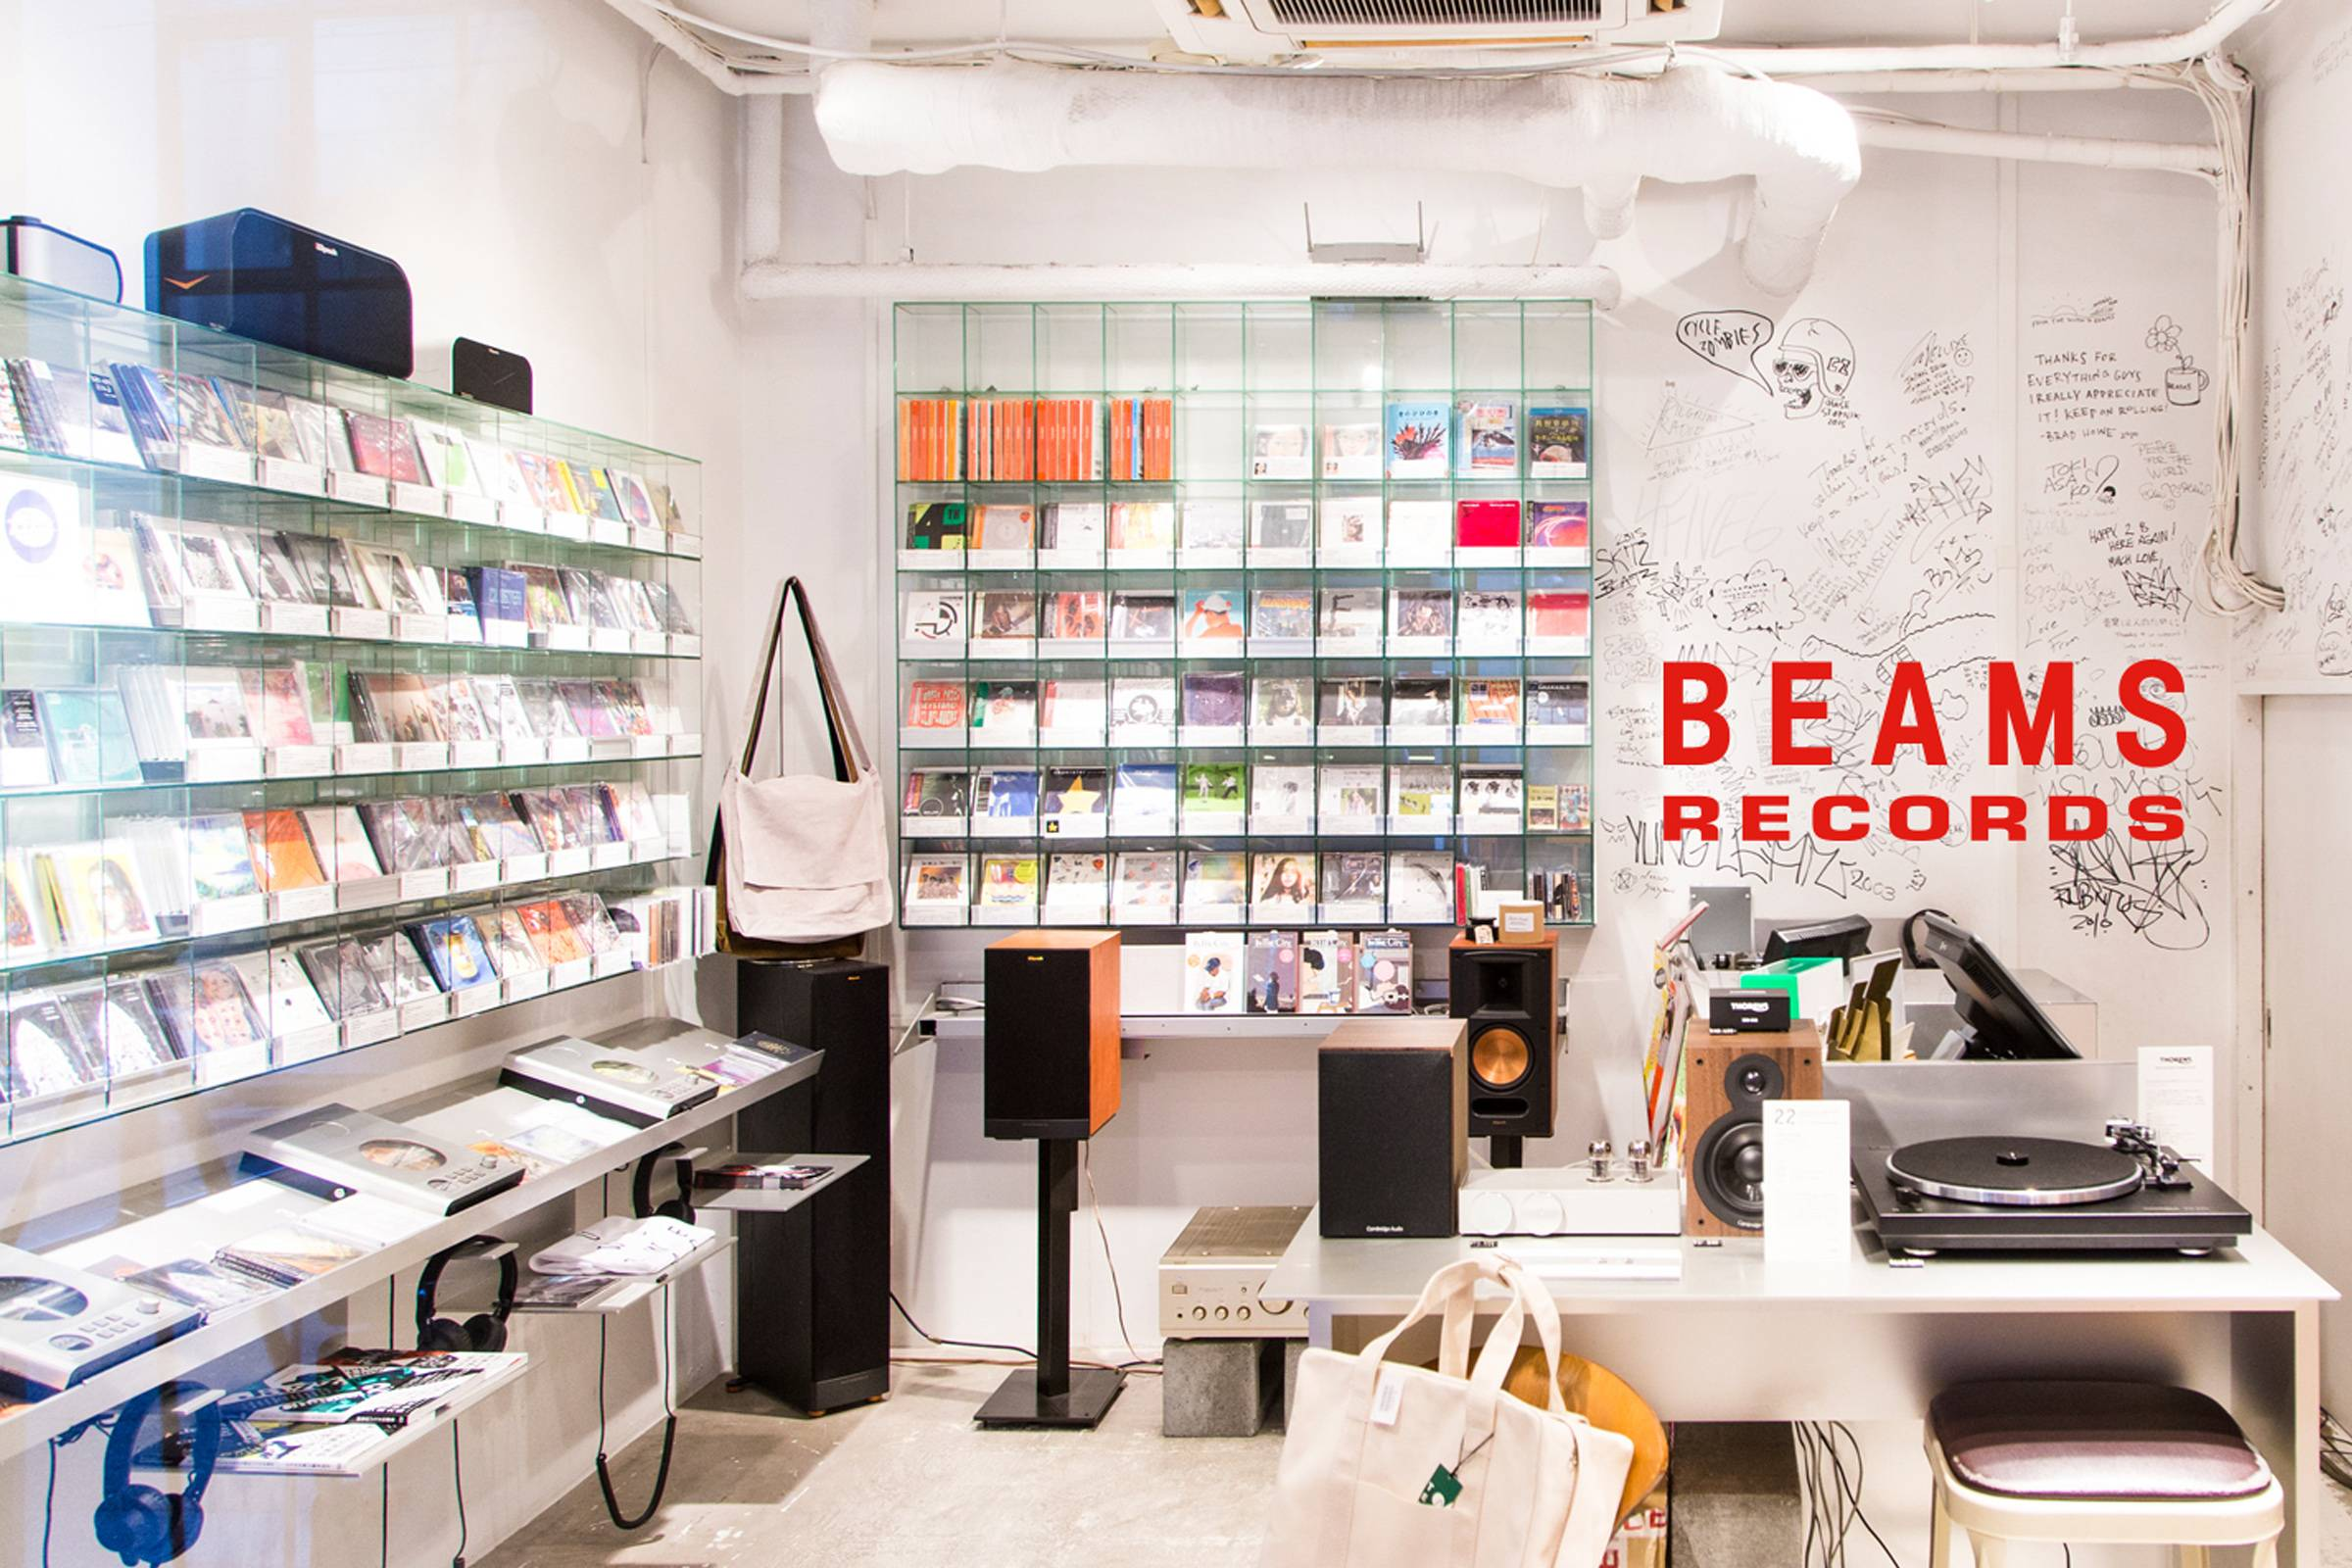 Influential japanese lifestyle and apparel brand beams has - Beams Spread Into More And More Places In The Japanese Market New Sub Brands Included A Record Label Beams Records A Furniture Shop Beams Modern